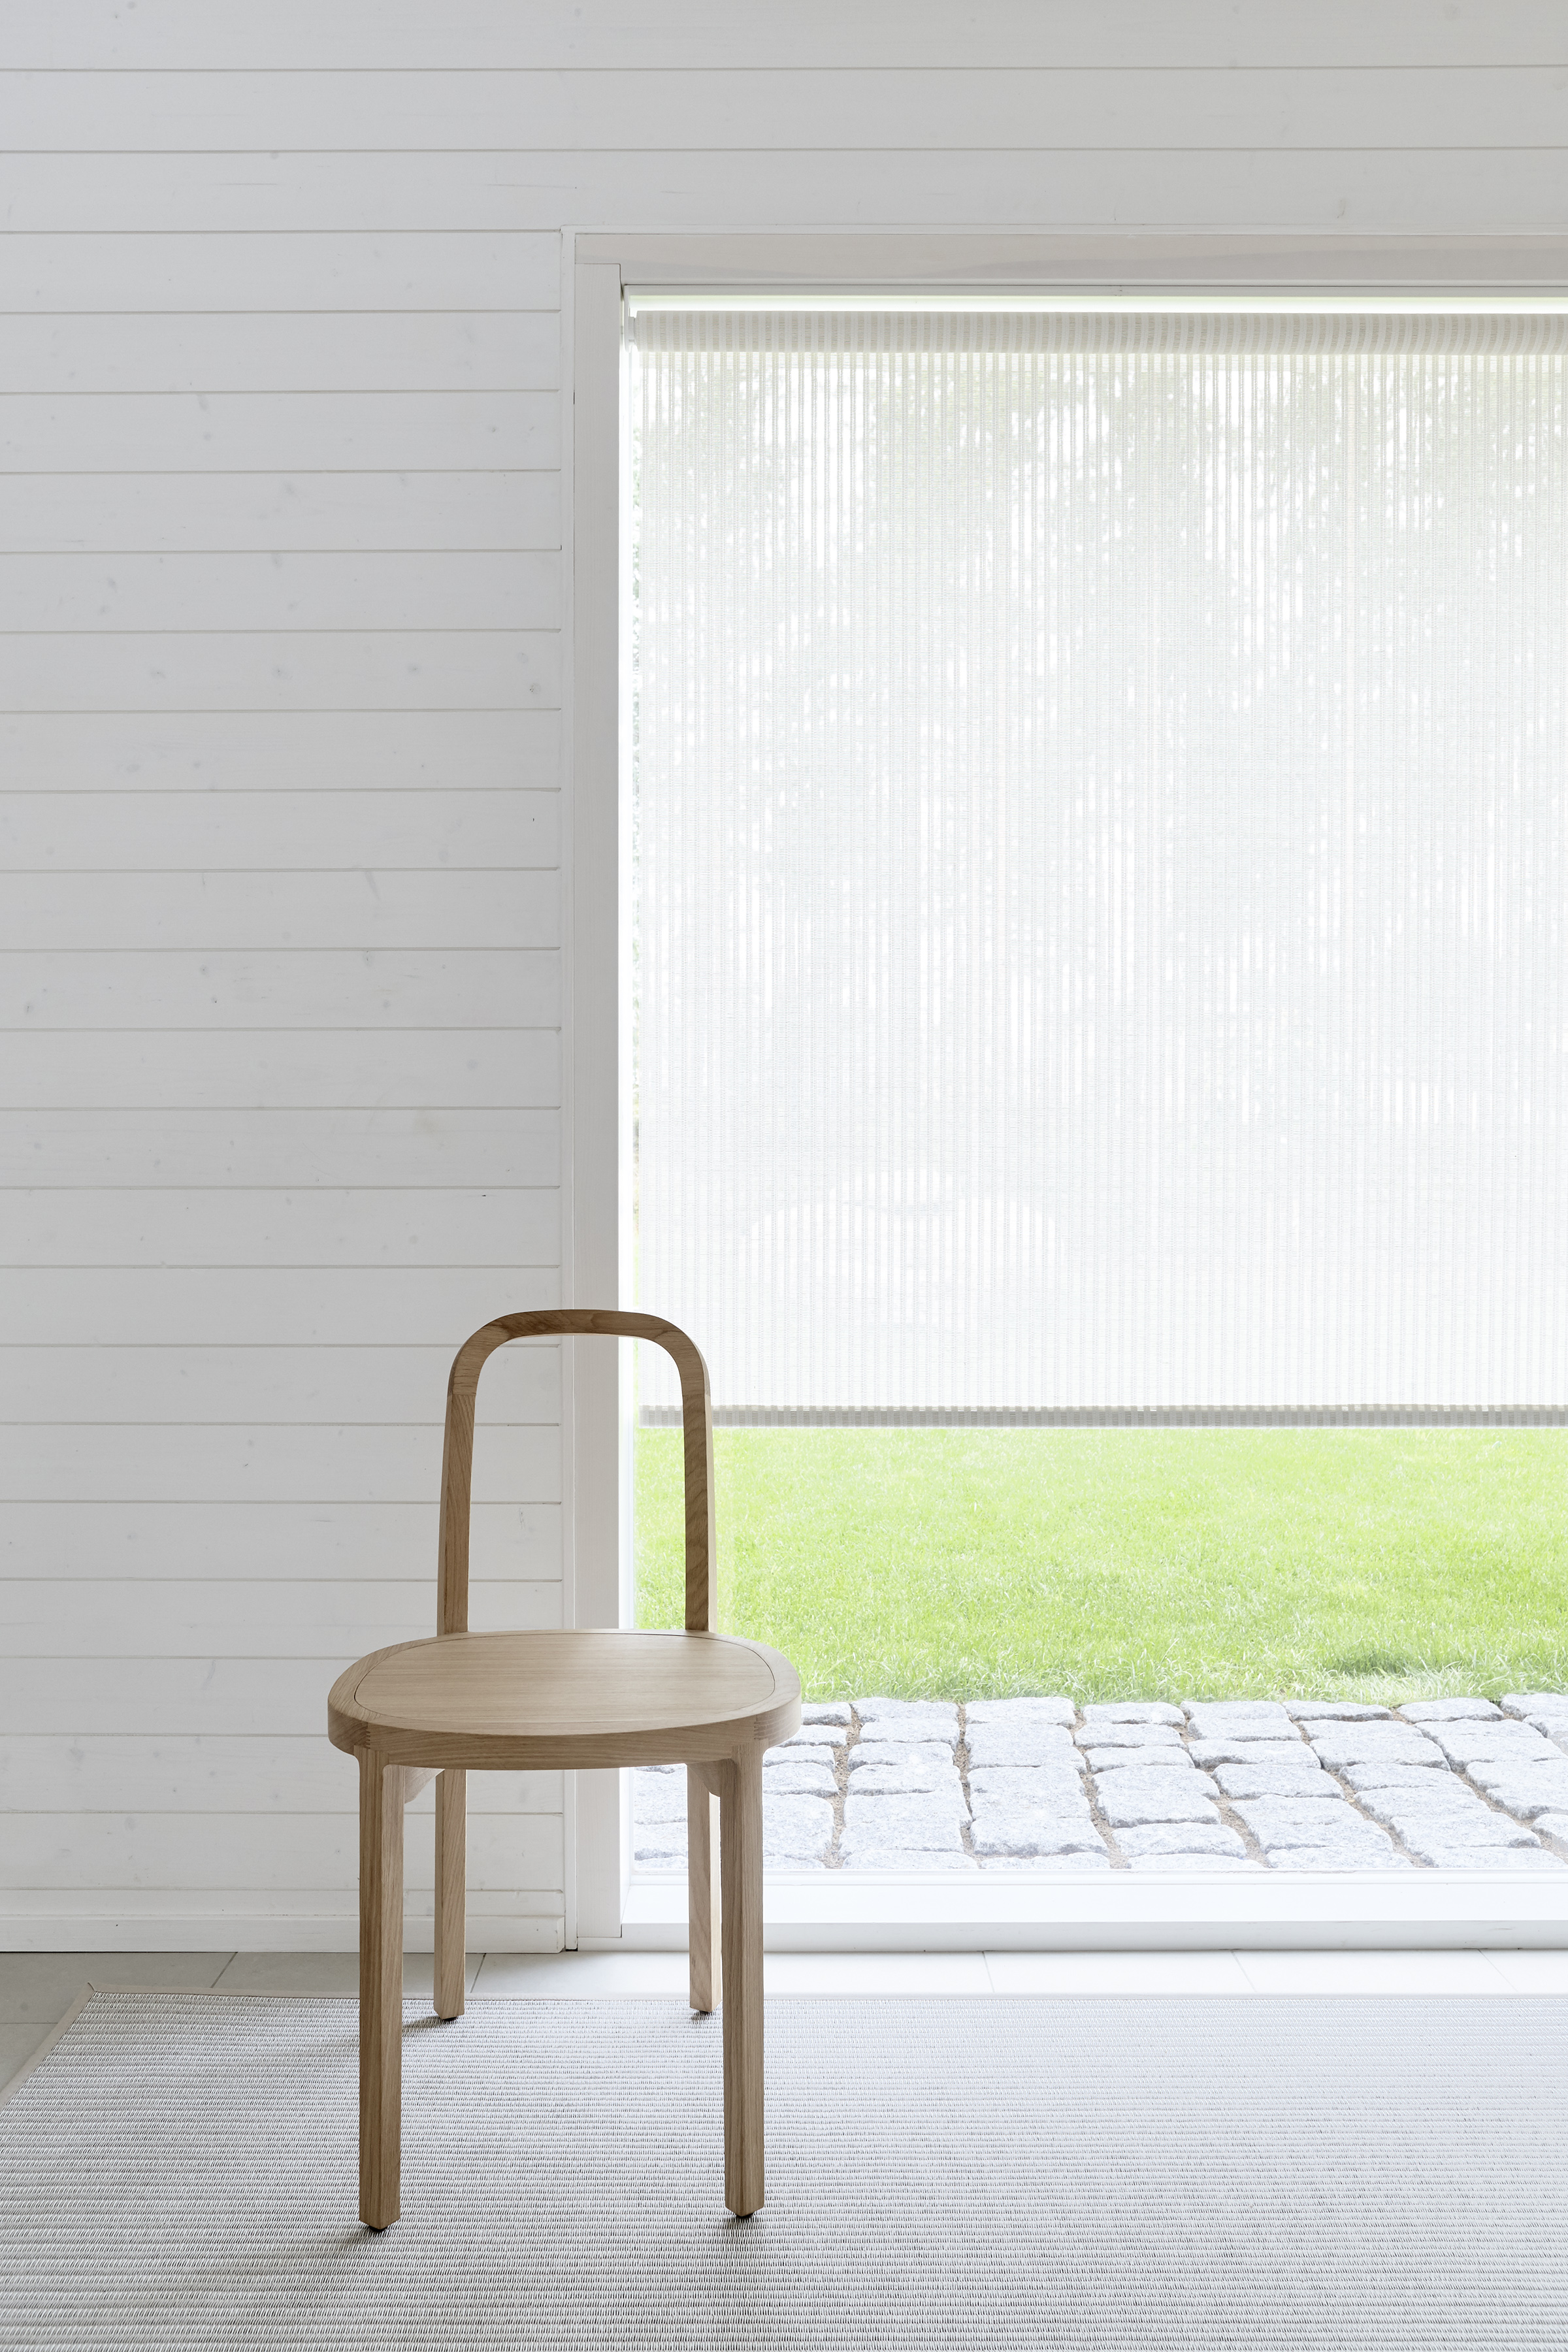 213115 VISTA WHITE-STONE FABRIC, CHAIN OPERATED ROLLER BLINDS (SILENT GLISS 4810) D, BOTTOM COVERED WITH FABRIC